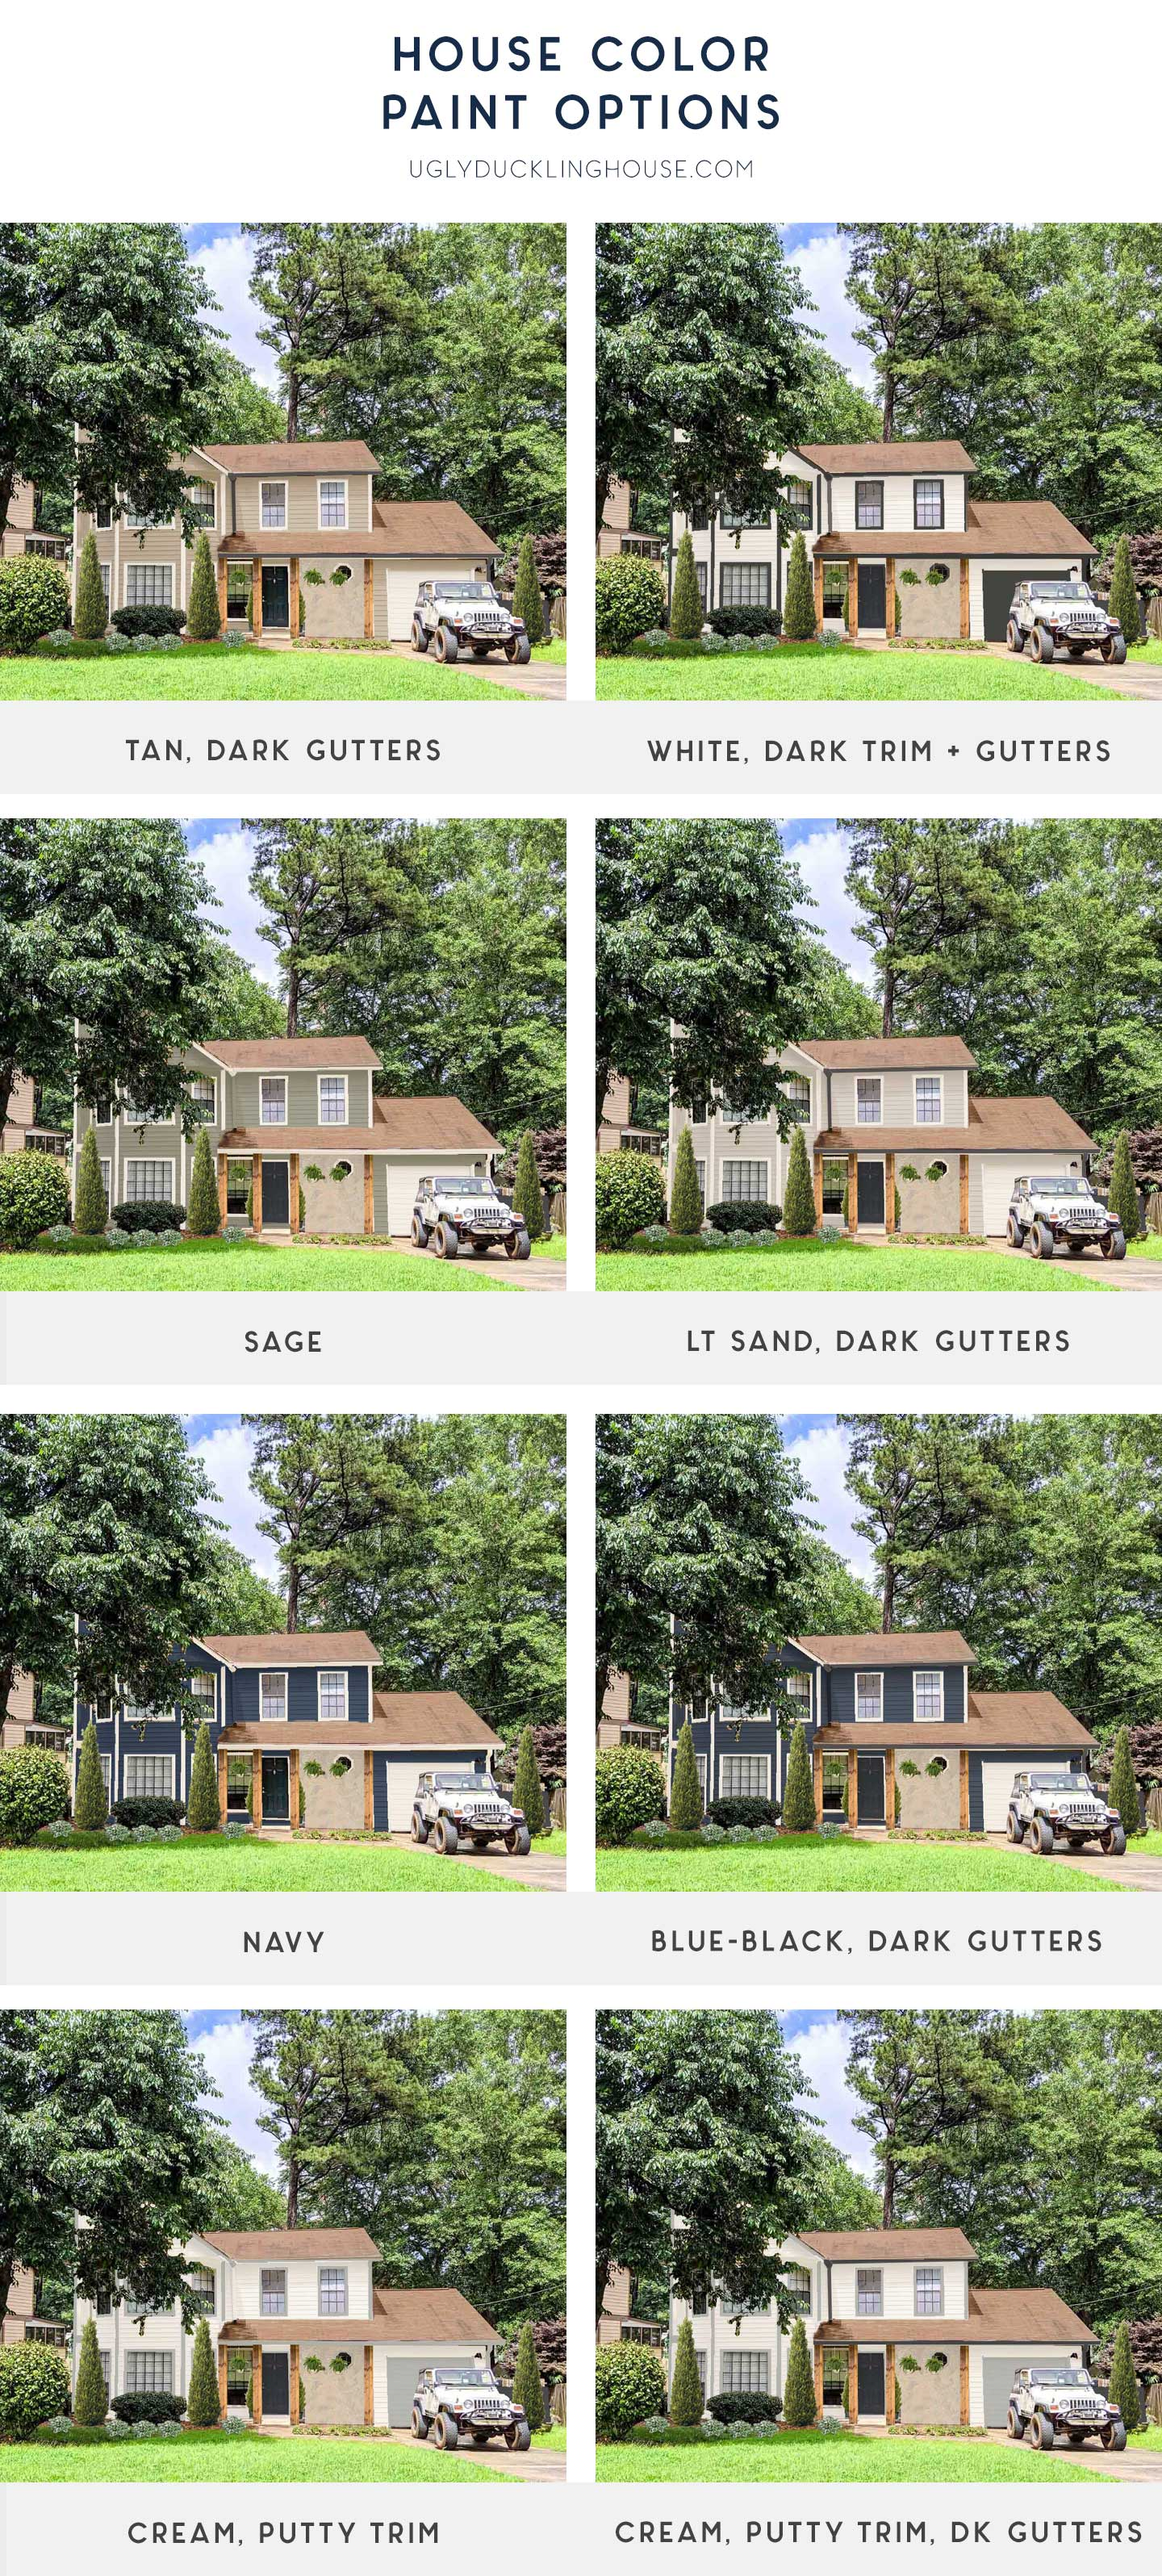 comparison of final house paint color and trim options with cedar wrapped columns and new landscaping